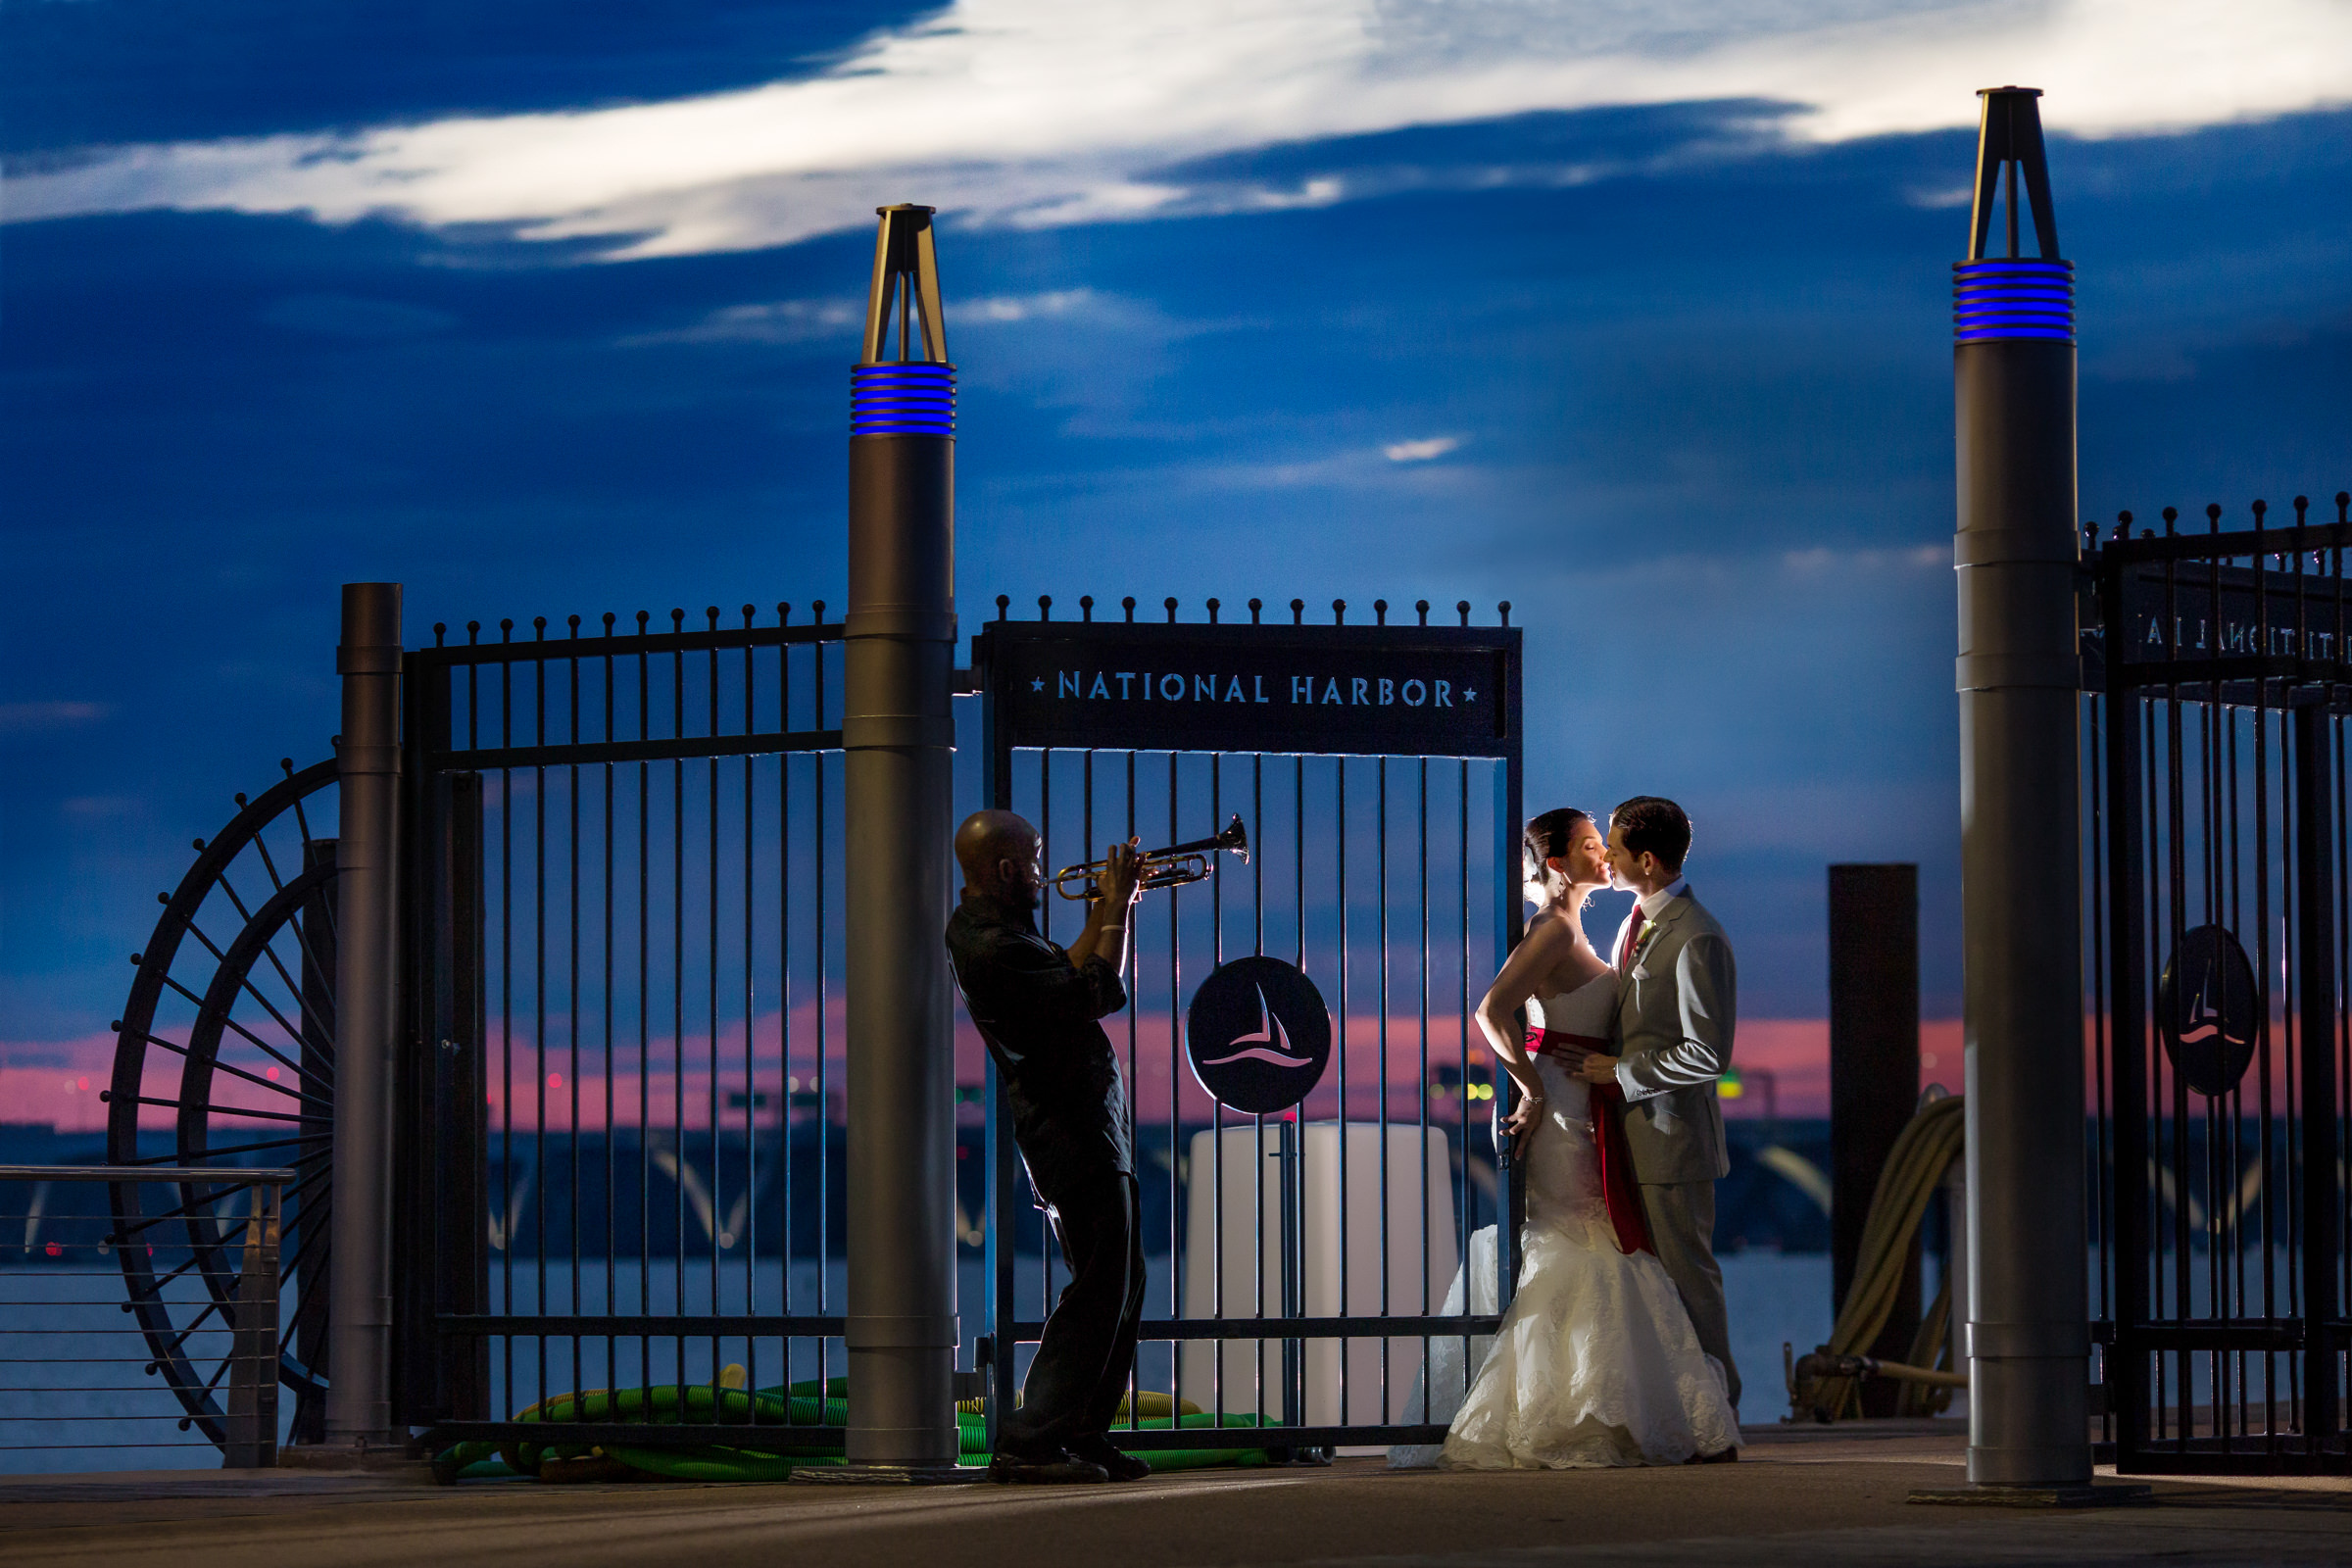 Trumpeter serenades couple at national harbor gate at sunset  - photo by Procopio Photography